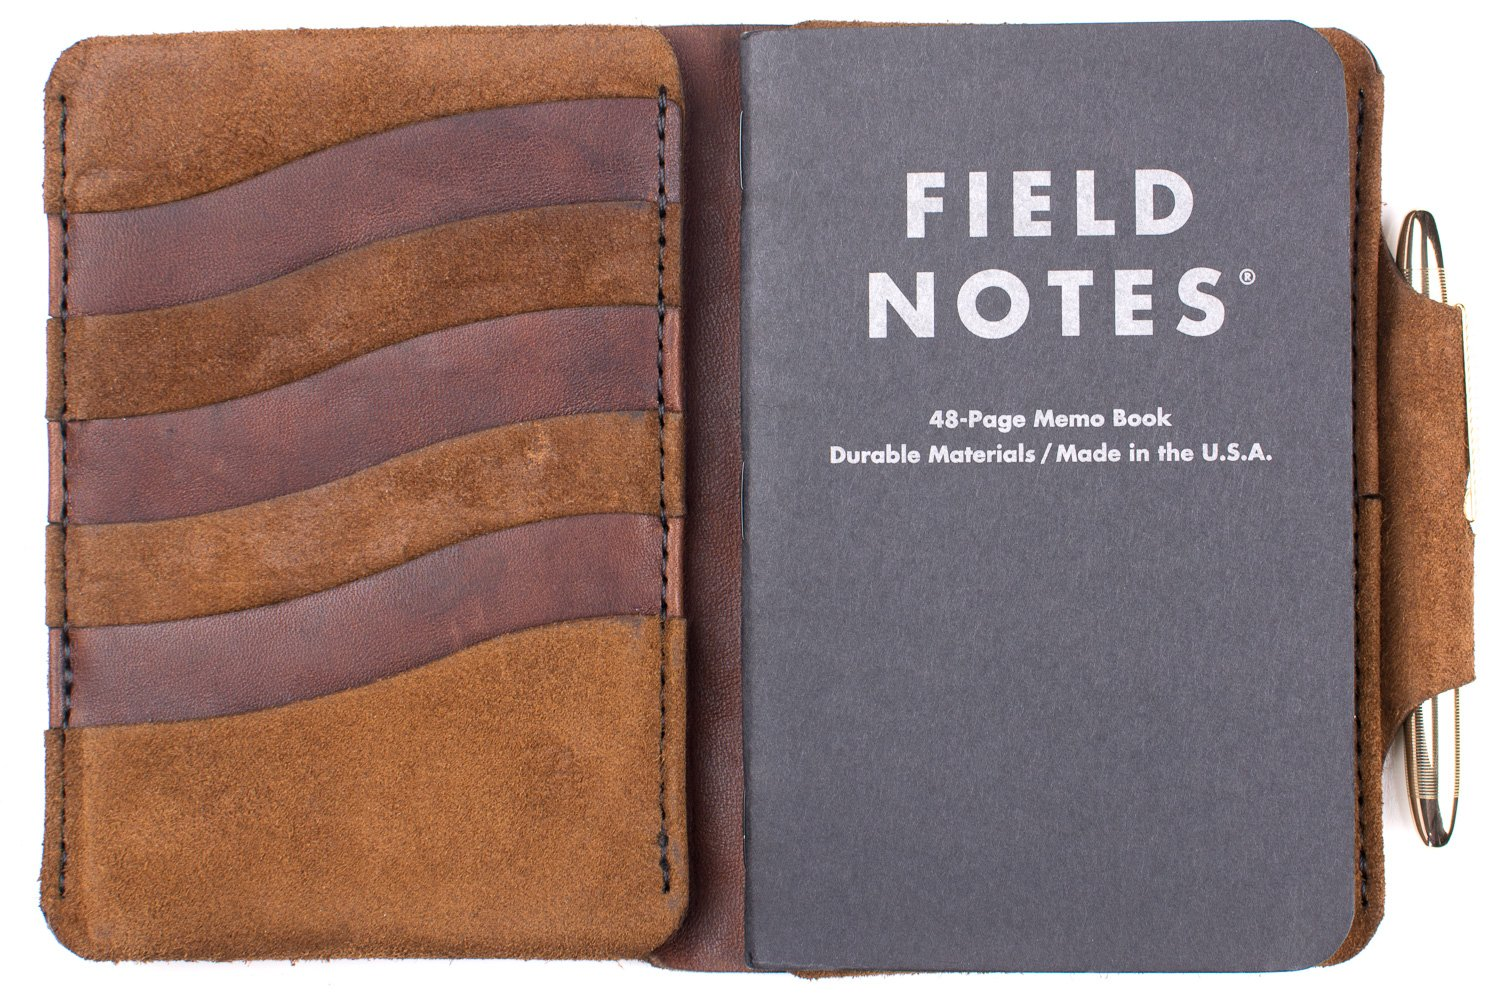 Form Function Form Men's Field Notes Wallet Tobacco Suede Mustang/Brass Pen